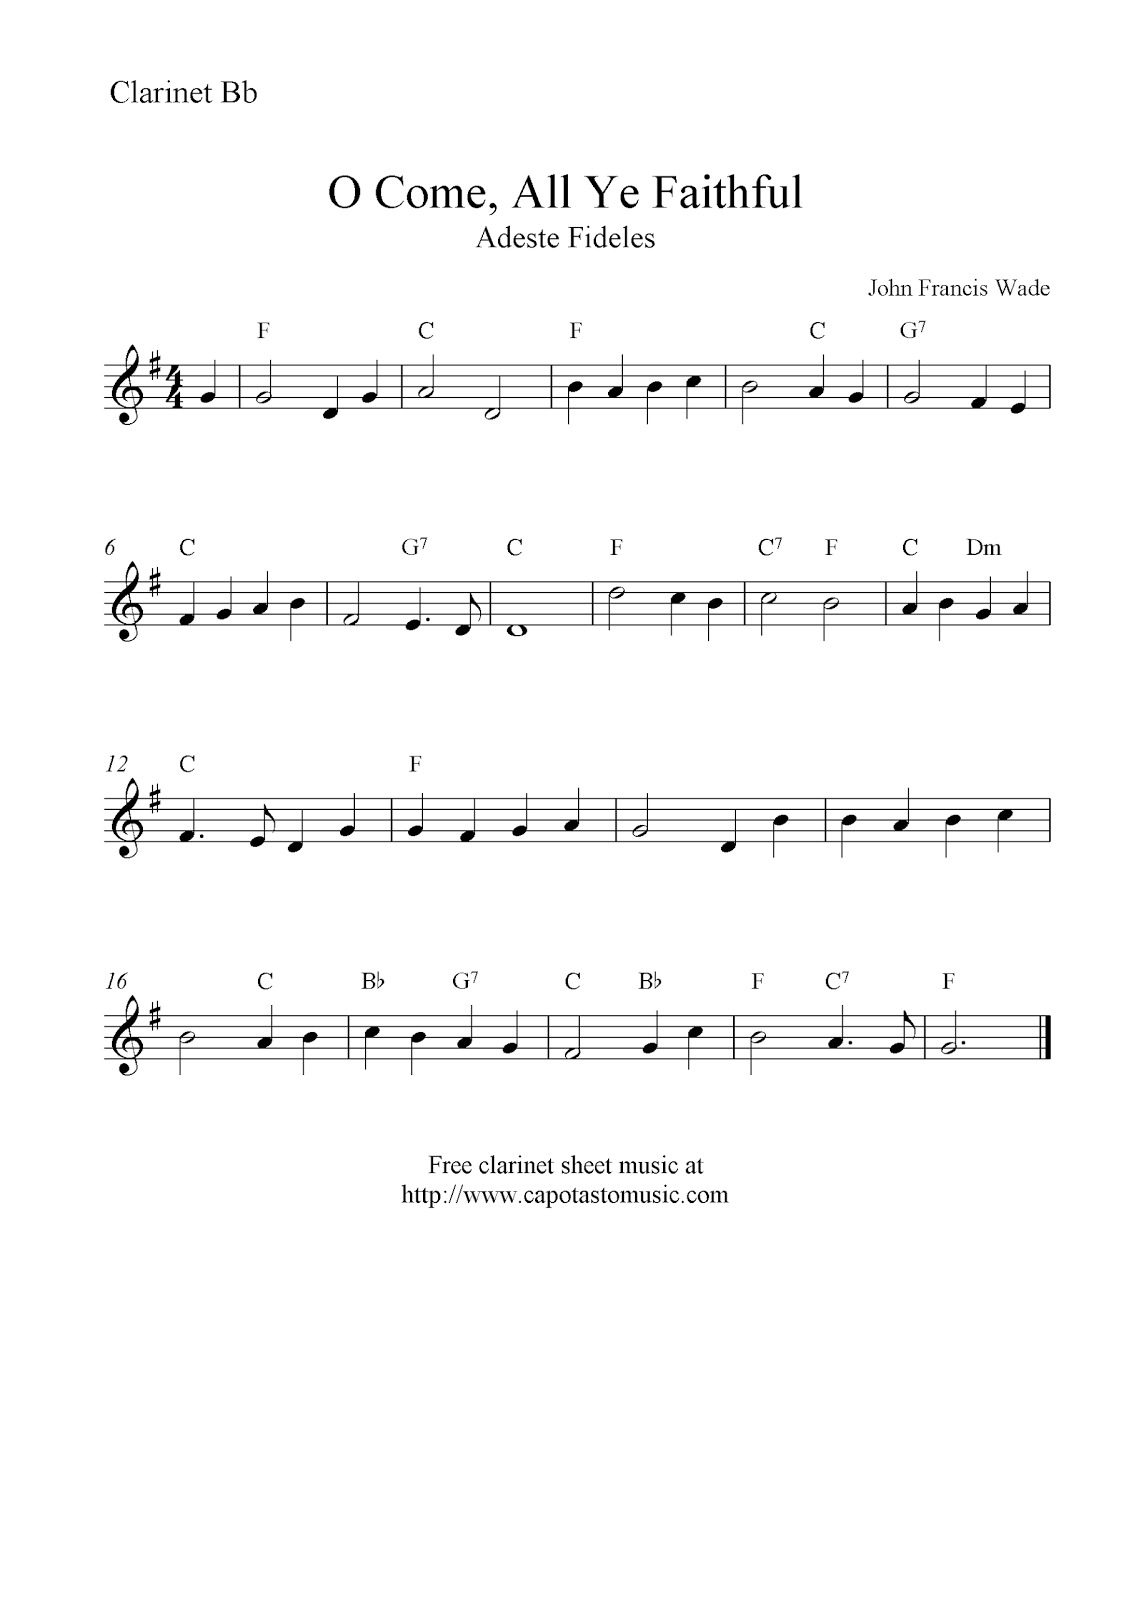 O Come All Ye Faithful Free Christmas Clarinet Sheet Music Notes